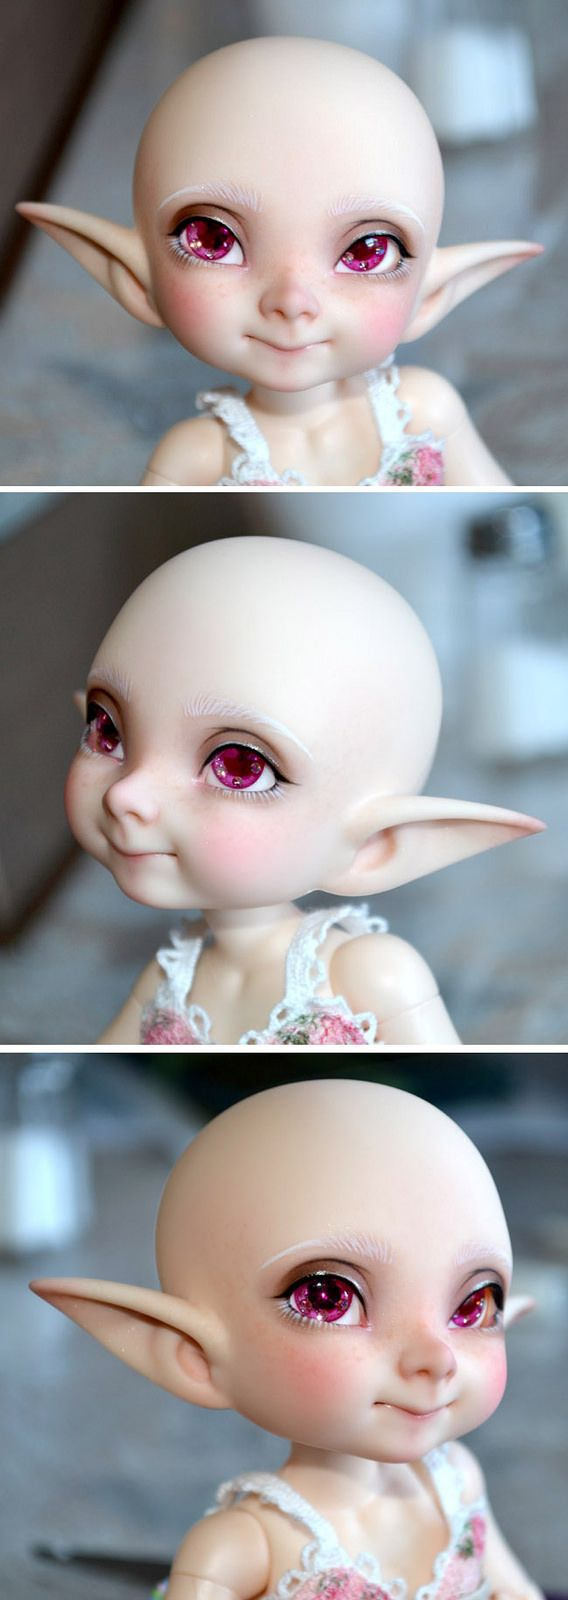 https://flic.kr/p/wUExfG | Realfee Pupu | Painted my pupu faceplate. She is cute but I am not sure if she's for me. Even though I tried to make her look sweet, something about the realfee version of the sculpt looks sneaky to me. Also very boyish. I dunno!